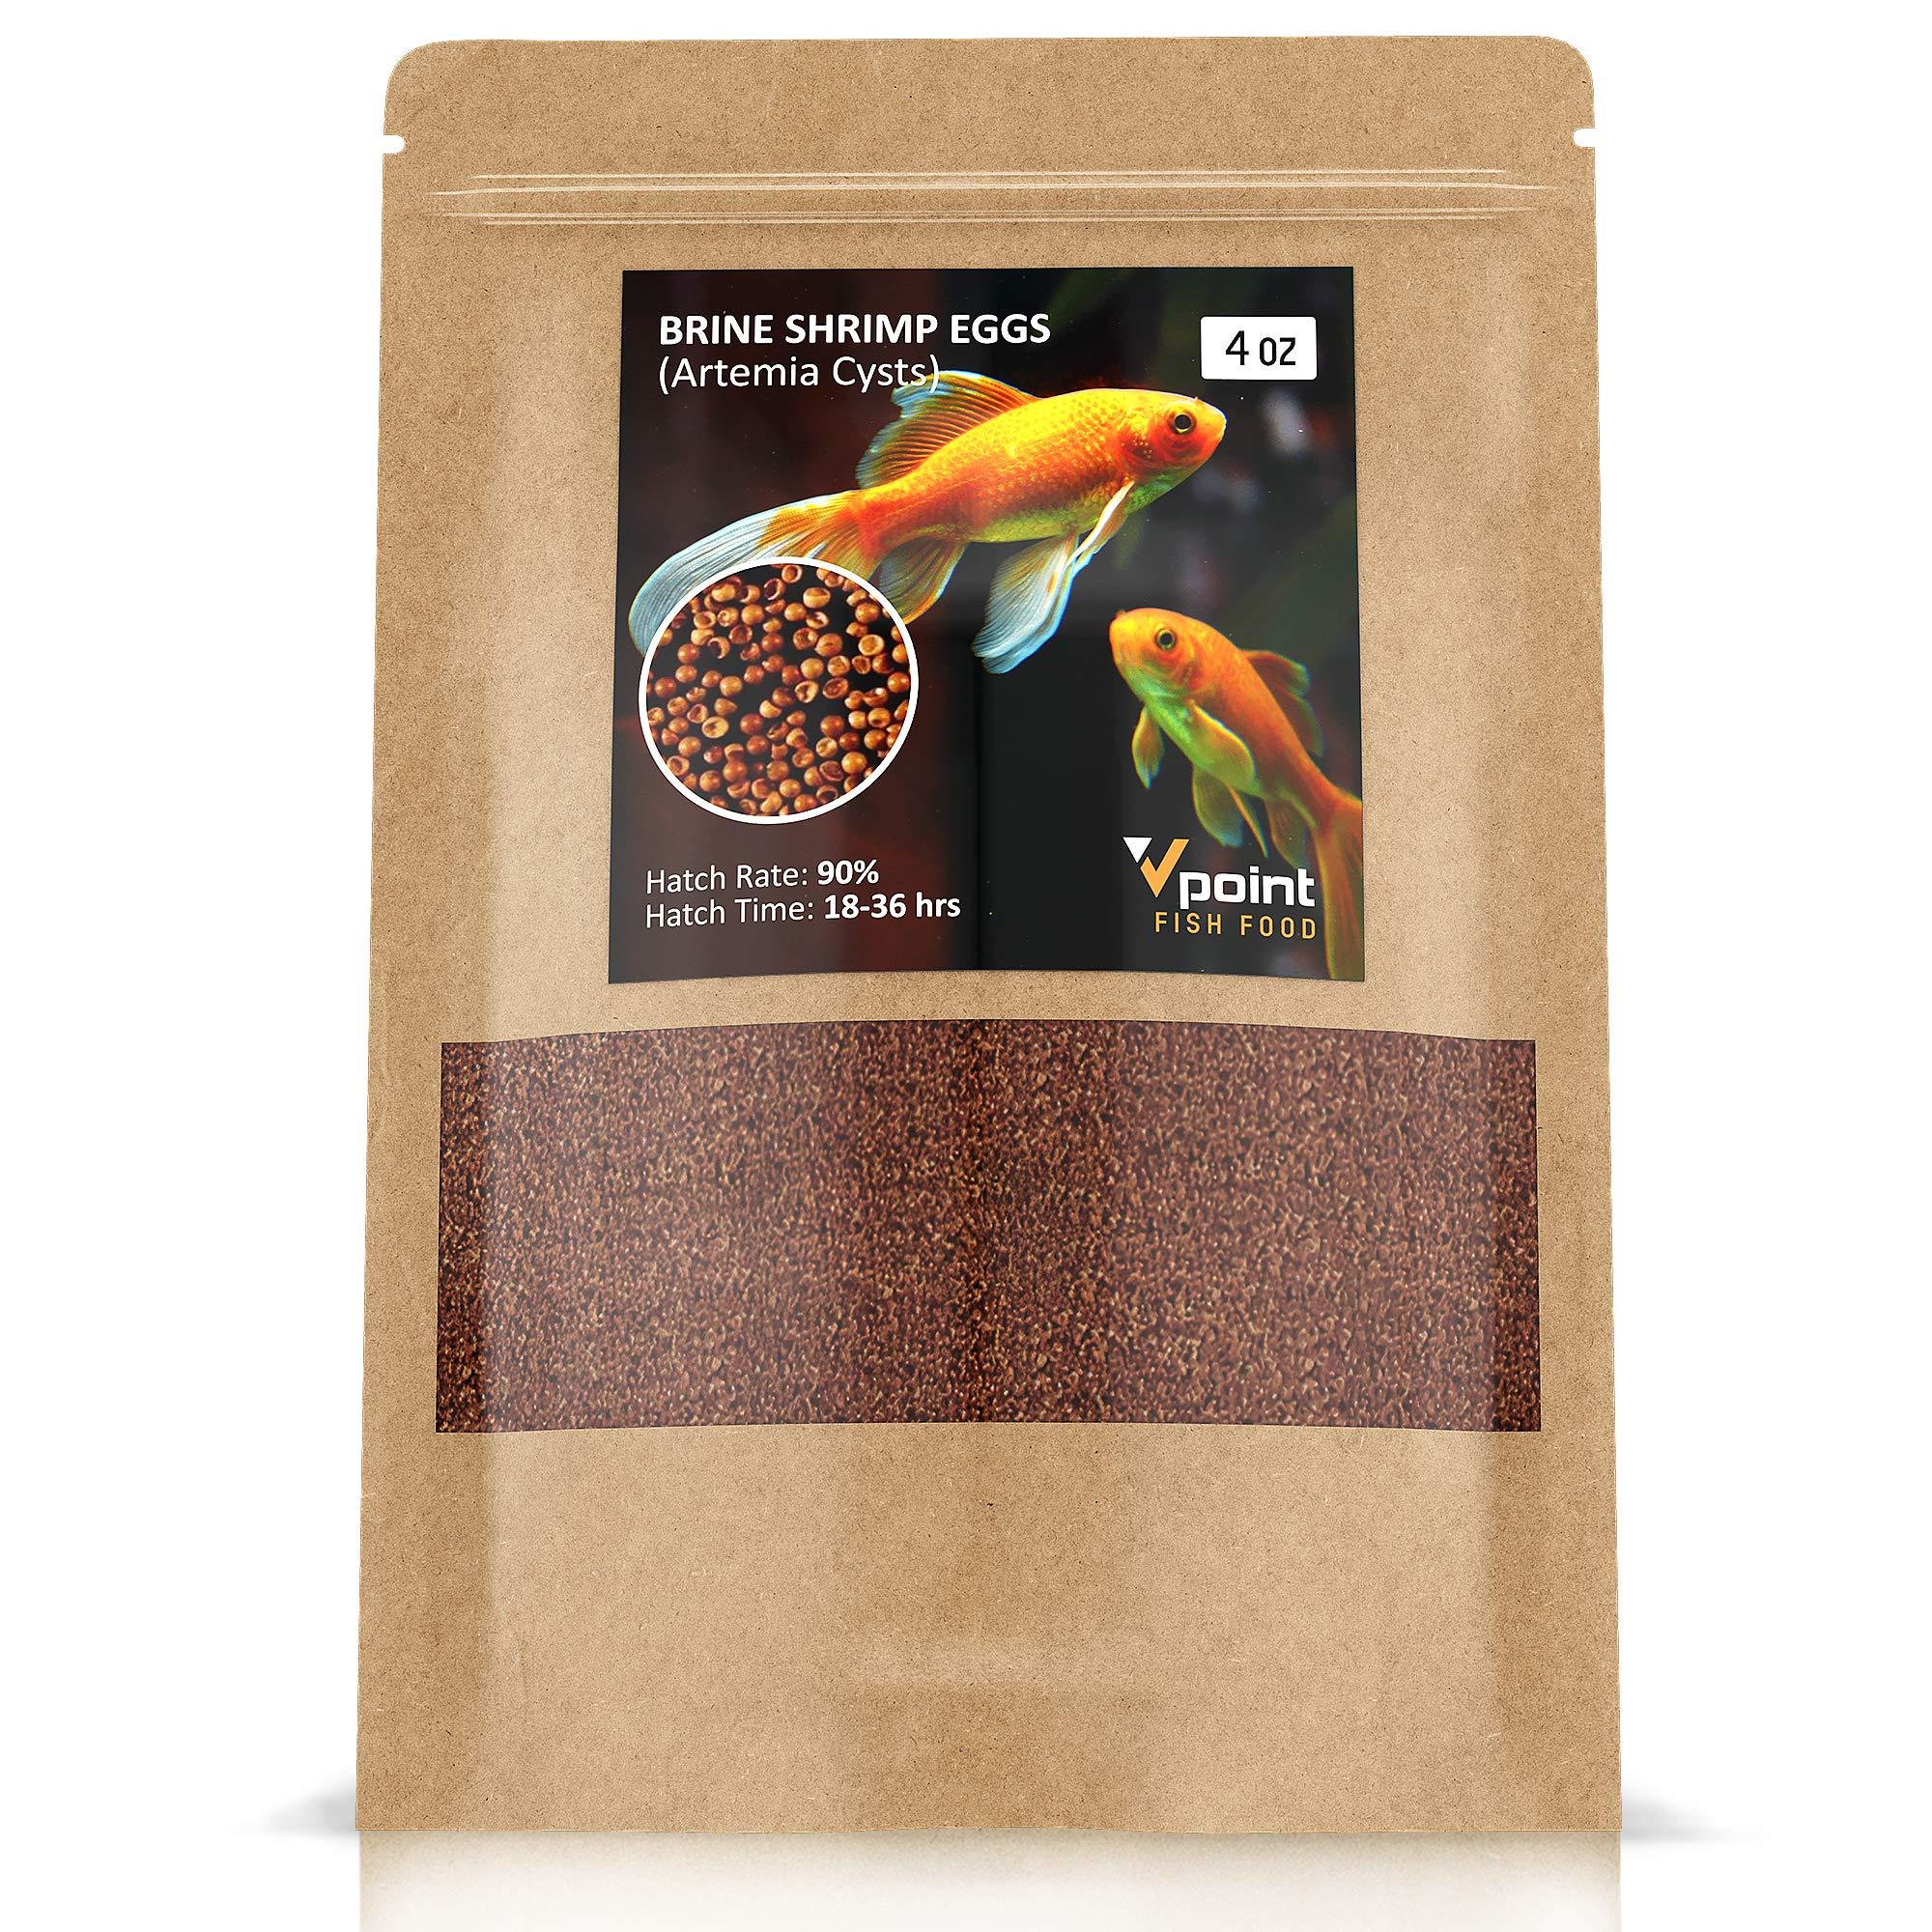 VPoint Brine Shrimp Eggs – Artemia Cysts of 90% Hatch Rate – Aquatic Foods Baby & Fry Foods - Great Live Fish Food for Freshwater Fish, Saltwater Fish, Fry, etc.